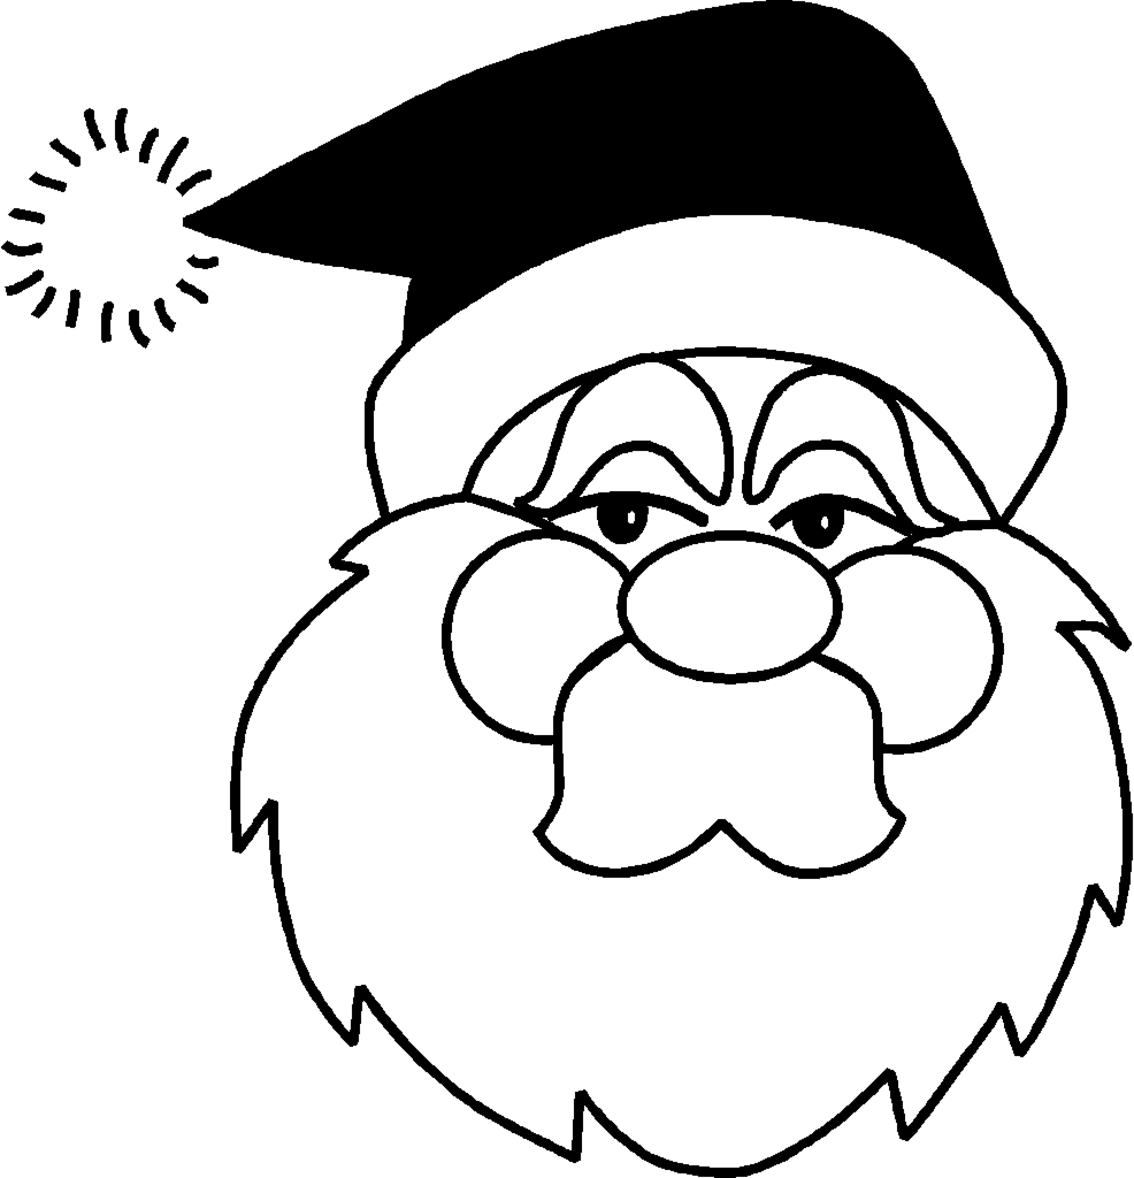 Coloriage pere noel les beaux dessins de f tes for Angeli da stampare e colorare